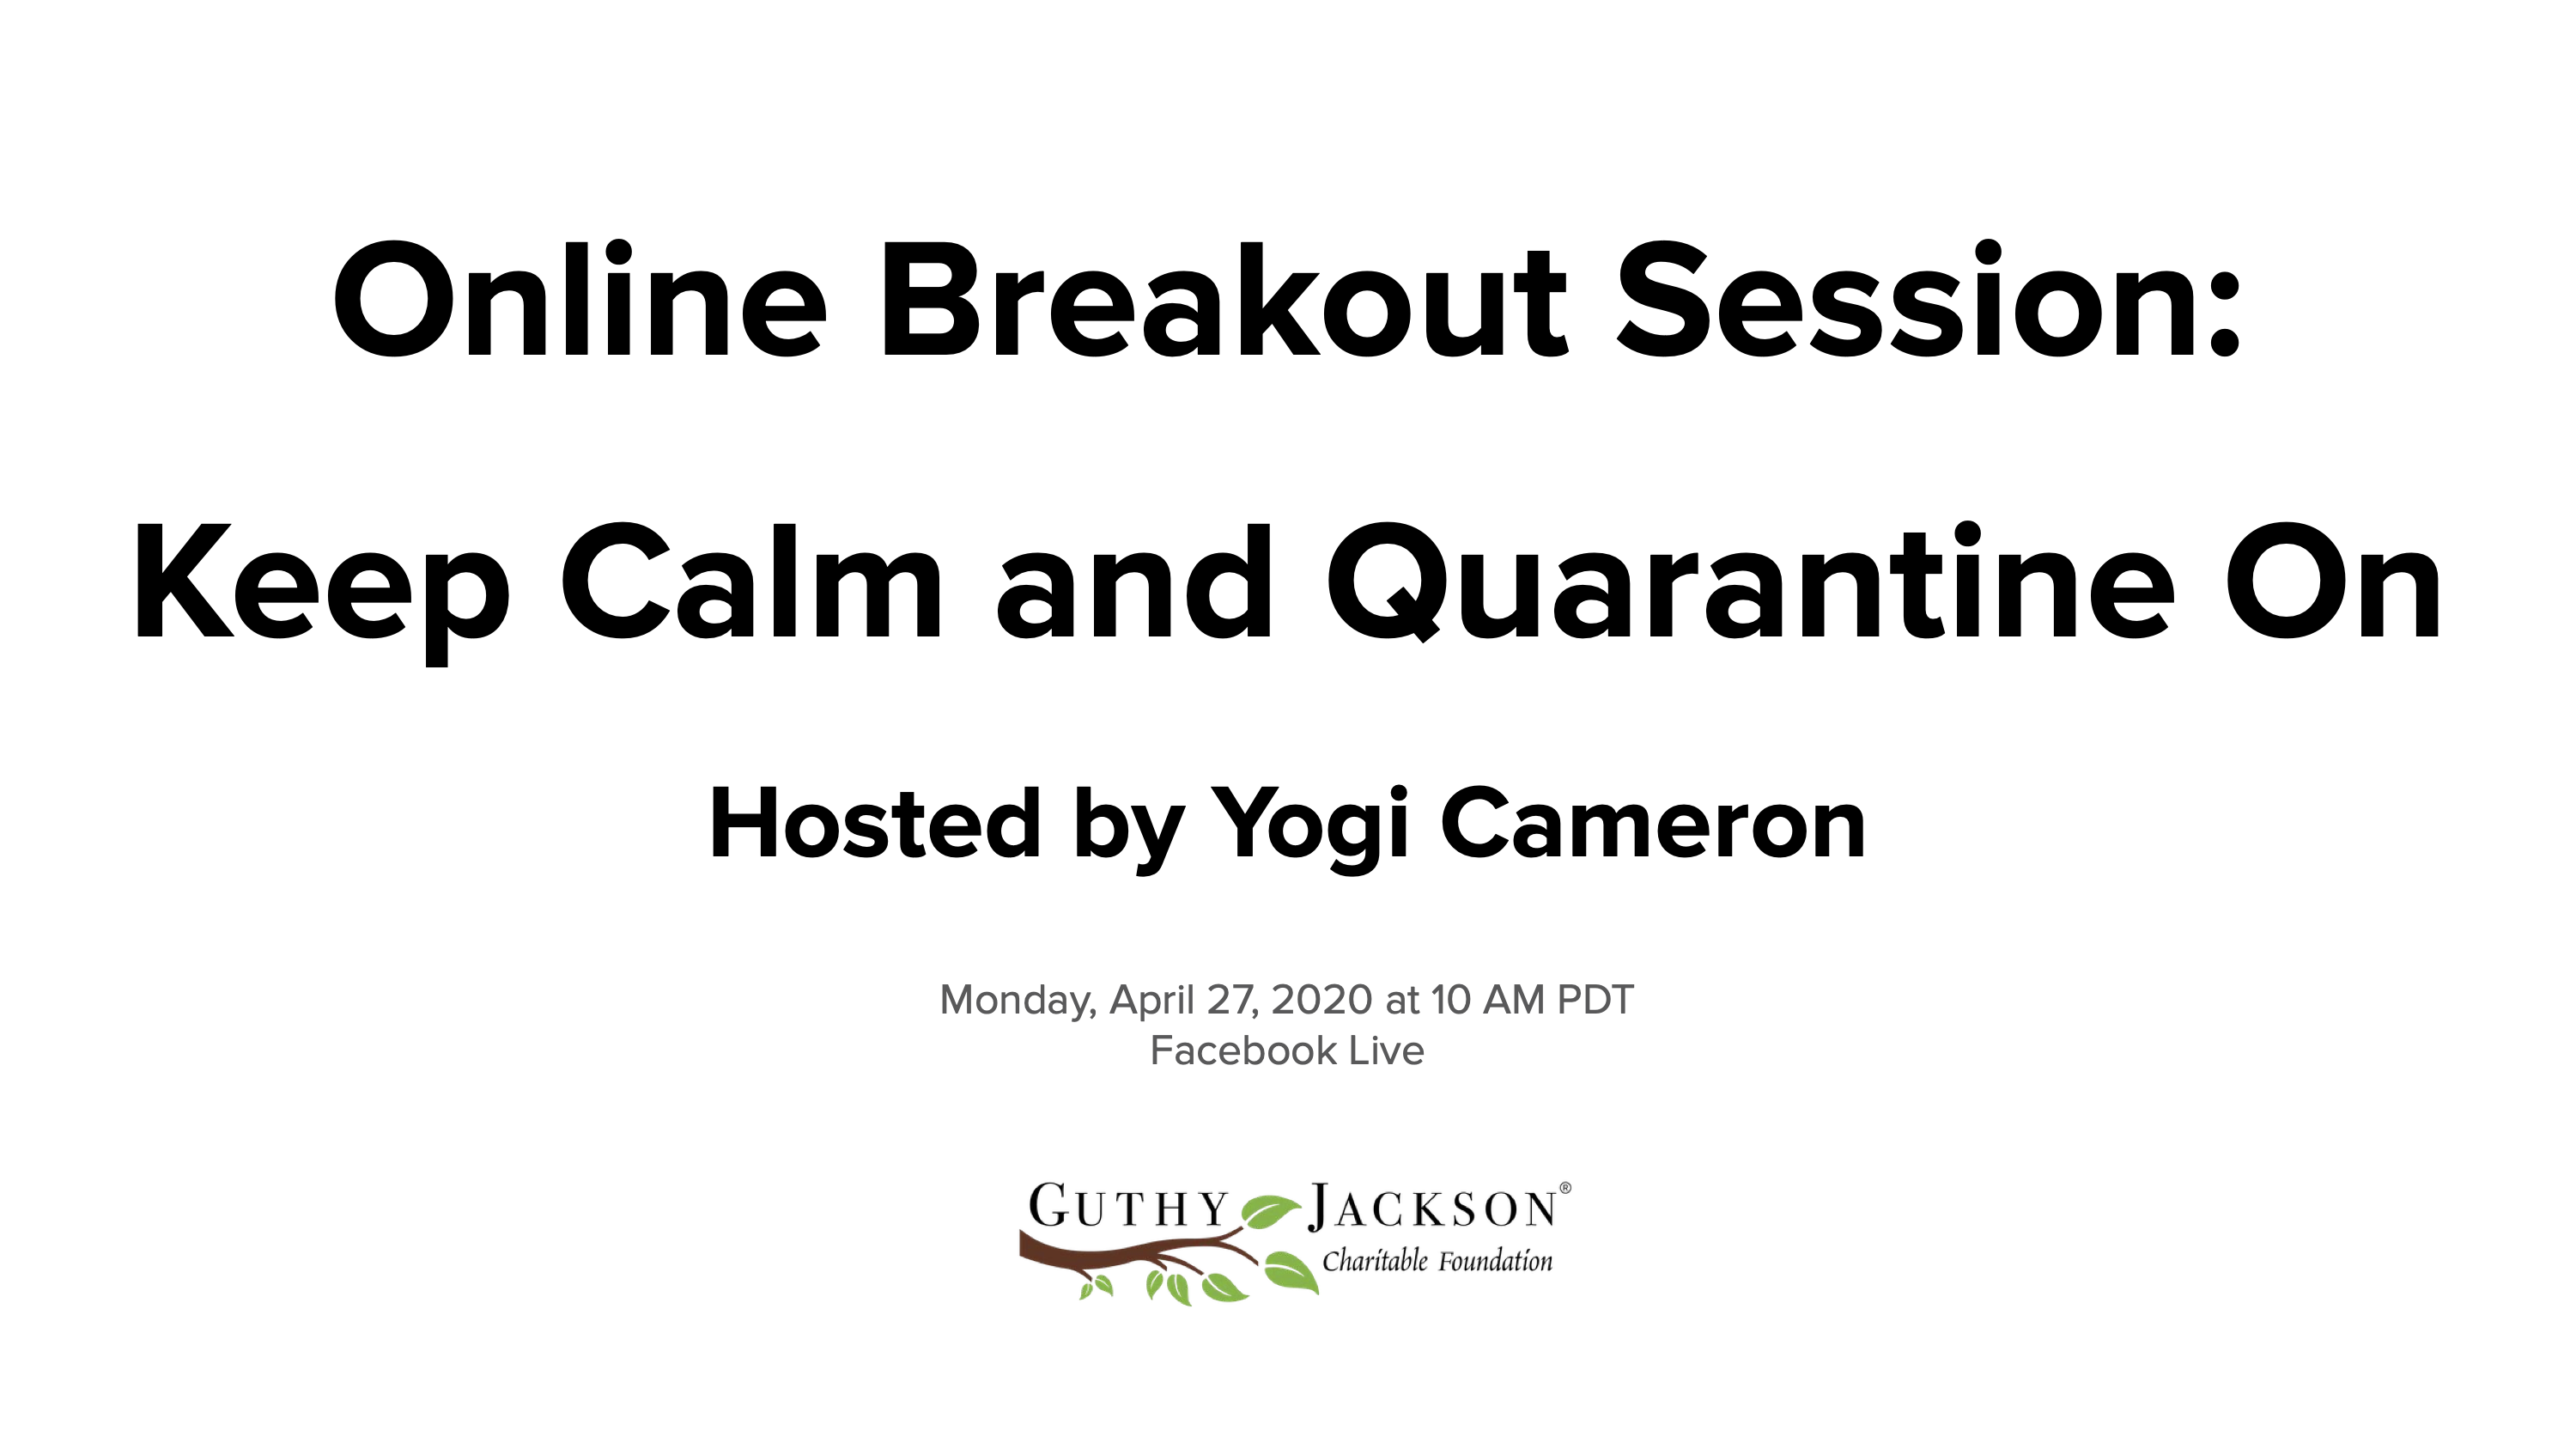 <a href='https://guthyjacksonfoundation.org/videos/online-breakout-session-keep-calm-and-quarantine-on-with-yogi-cameron/' title='Online Breakout Session: Keep Calm and Quarantine On with Yogi Cameron'>Online Breakout Session: Keep Calm and Quarantine On with Yogi Cameron</a>